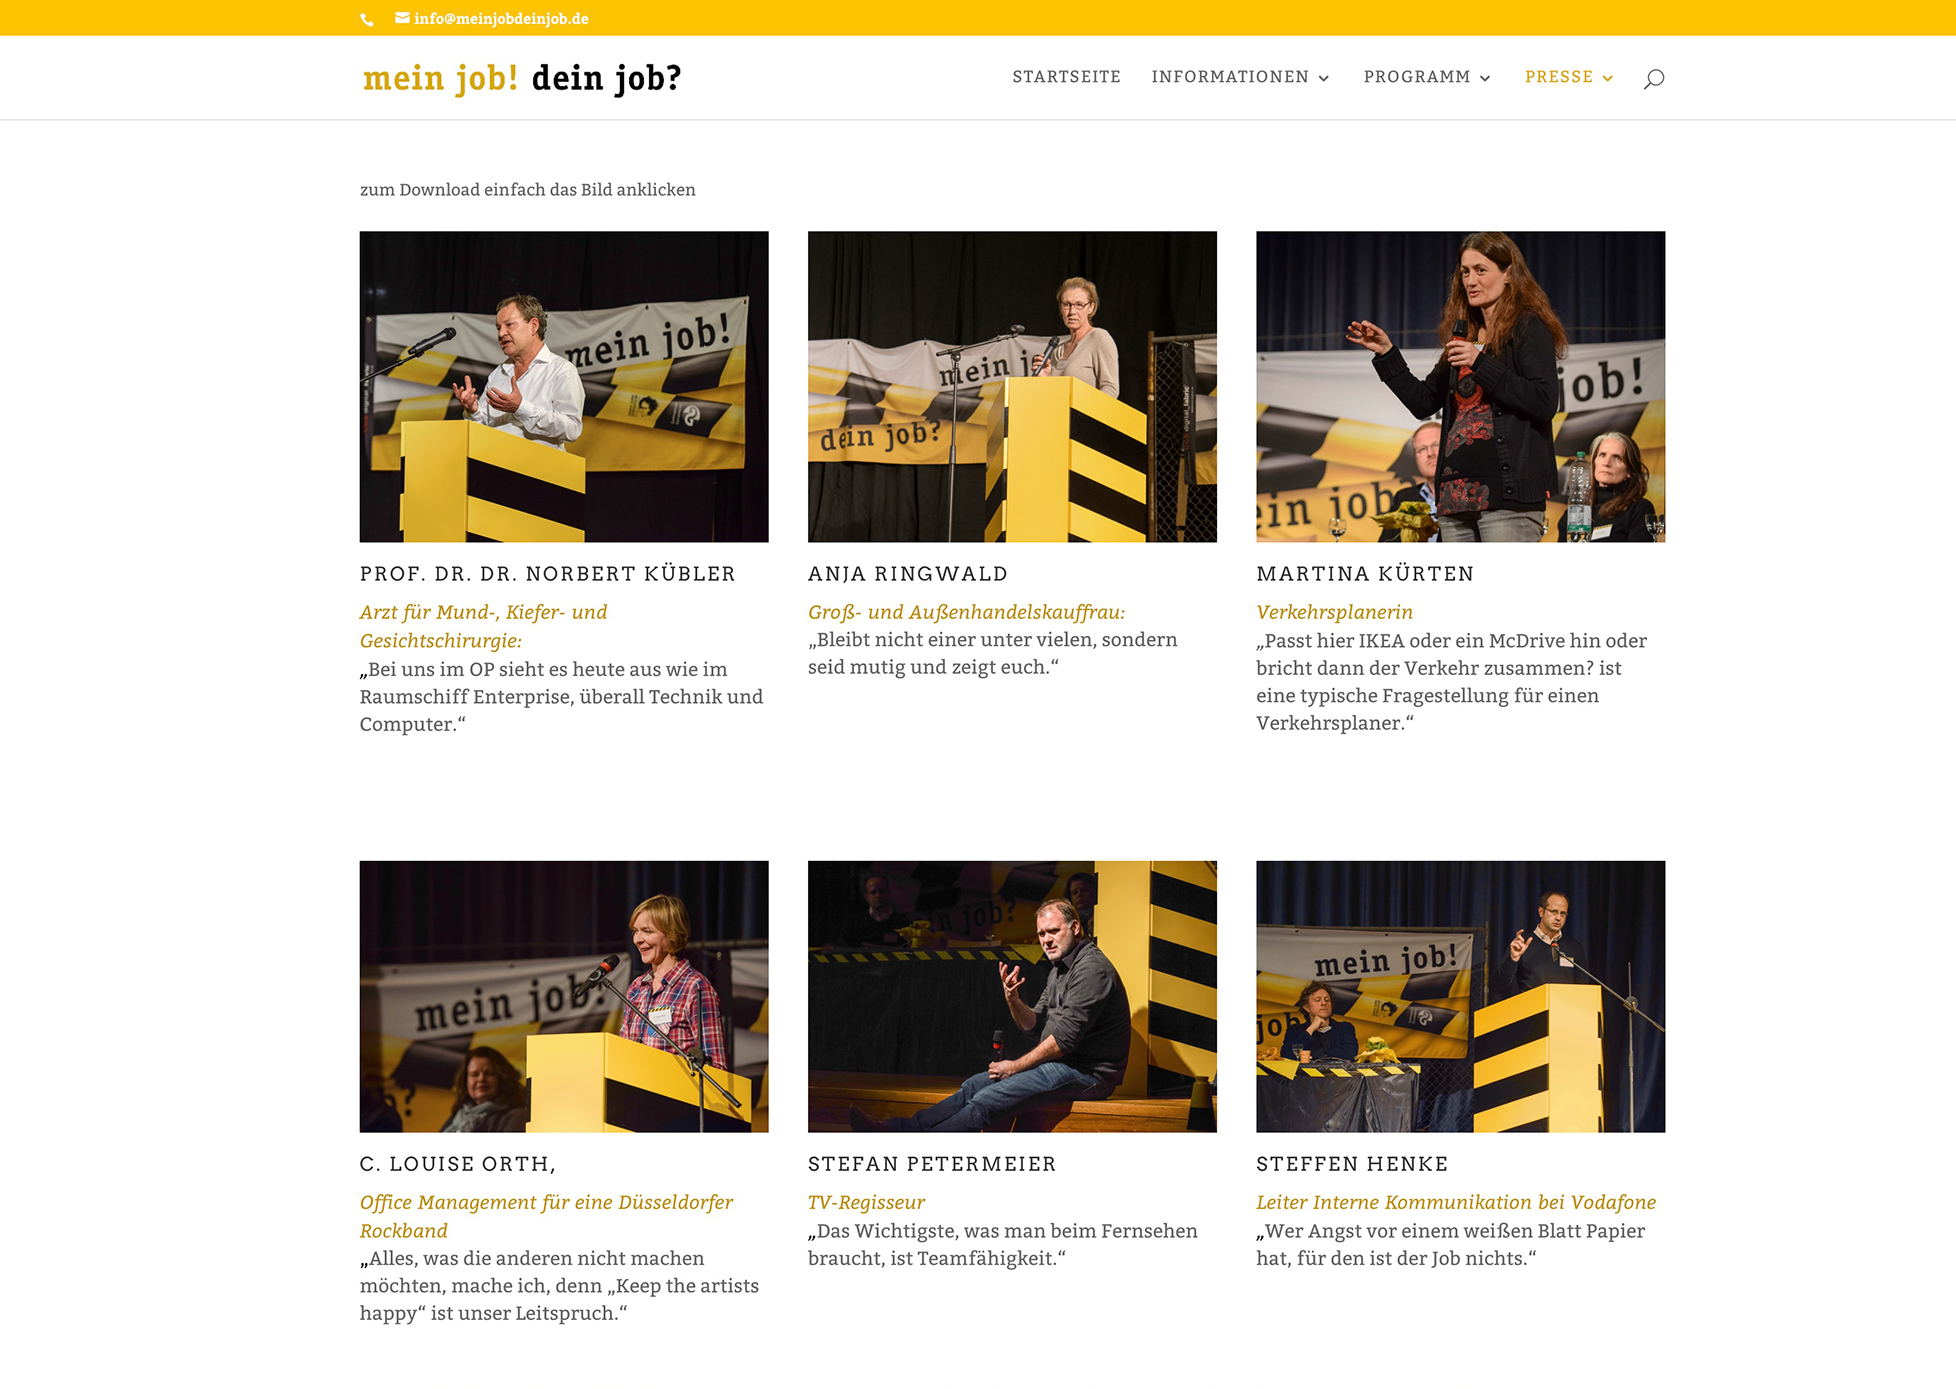 mein job! dein job? Website